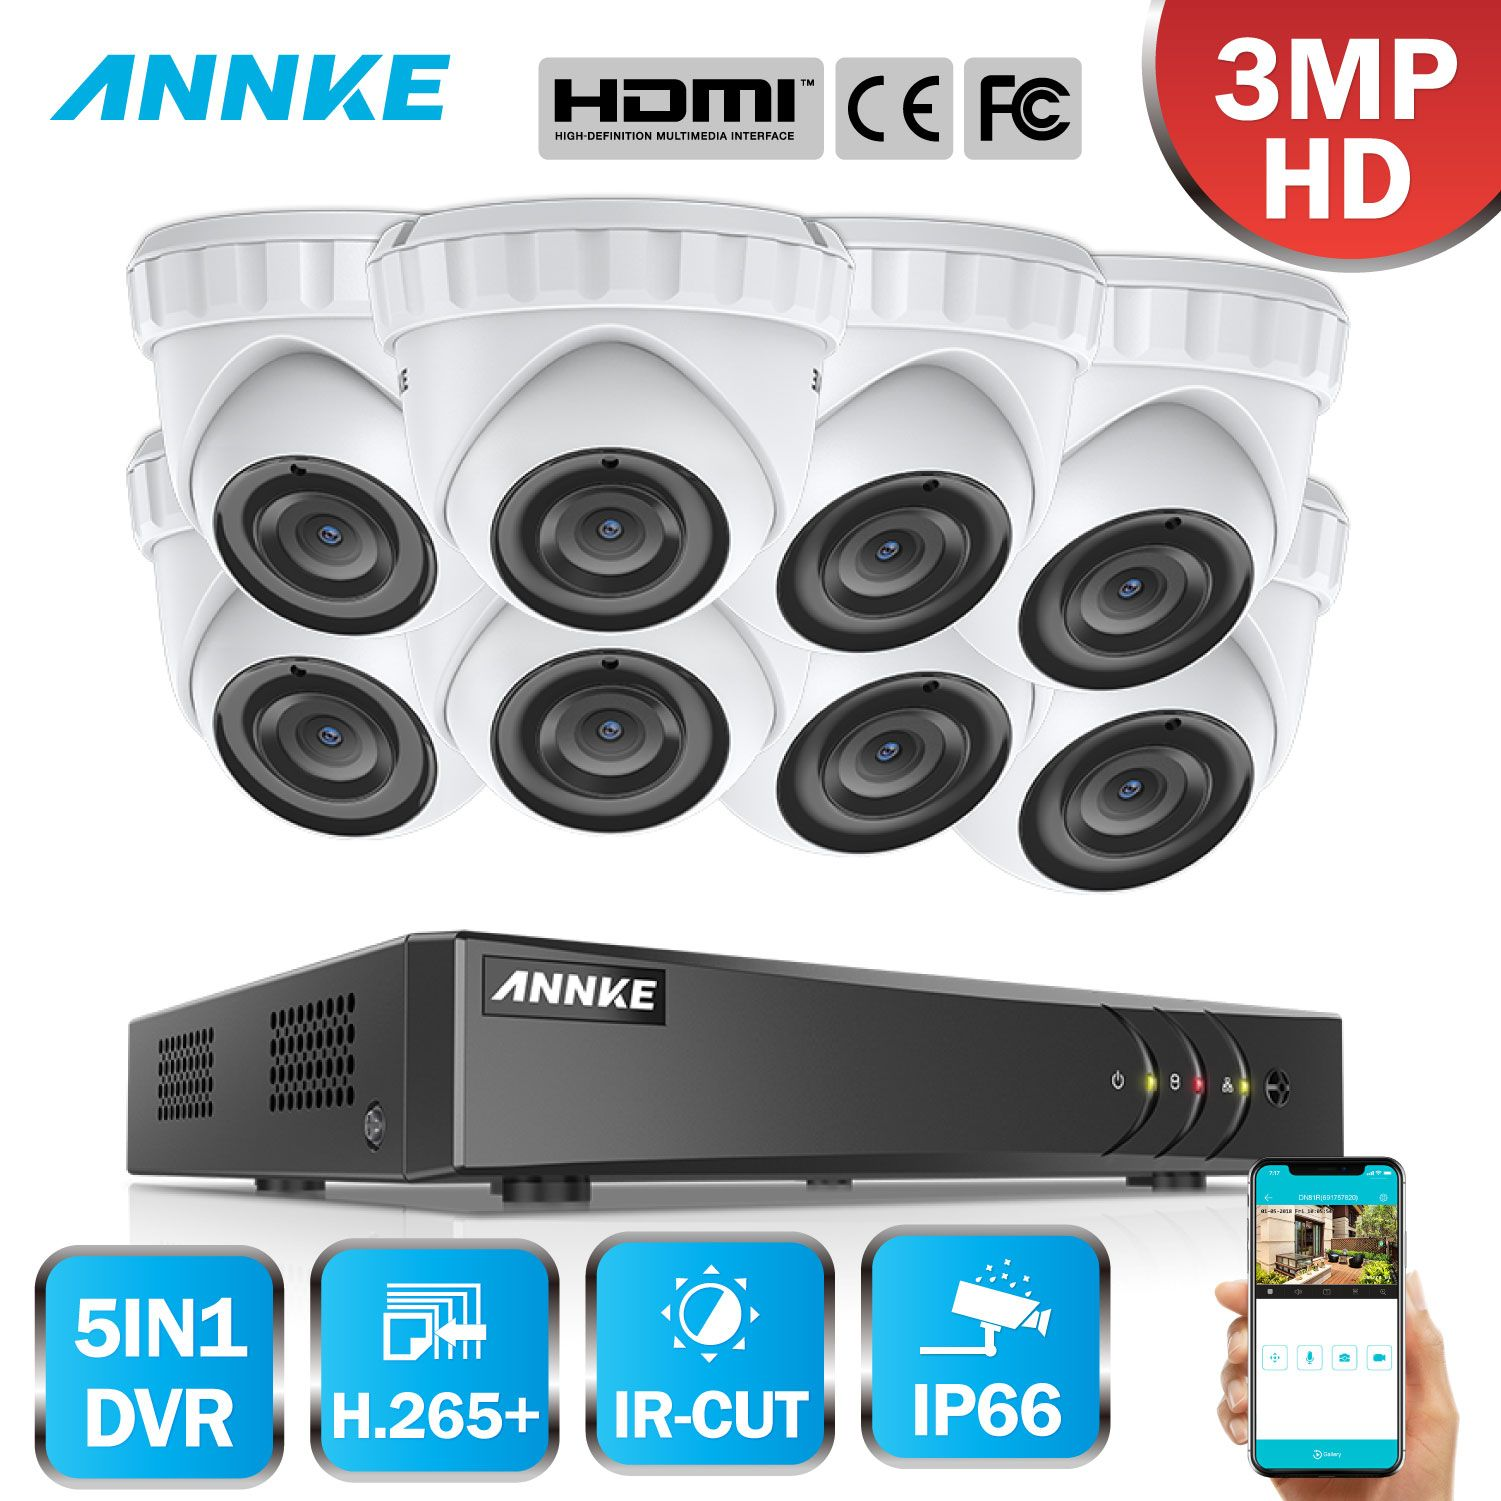 ANNKE 8CH HD 3MP CCTV Kamera Sicherheit System 5in1 HDMI DVR 8PCS 3MP TVI Dome Outdoor Wetterfeste Home Motion erkennung Kit